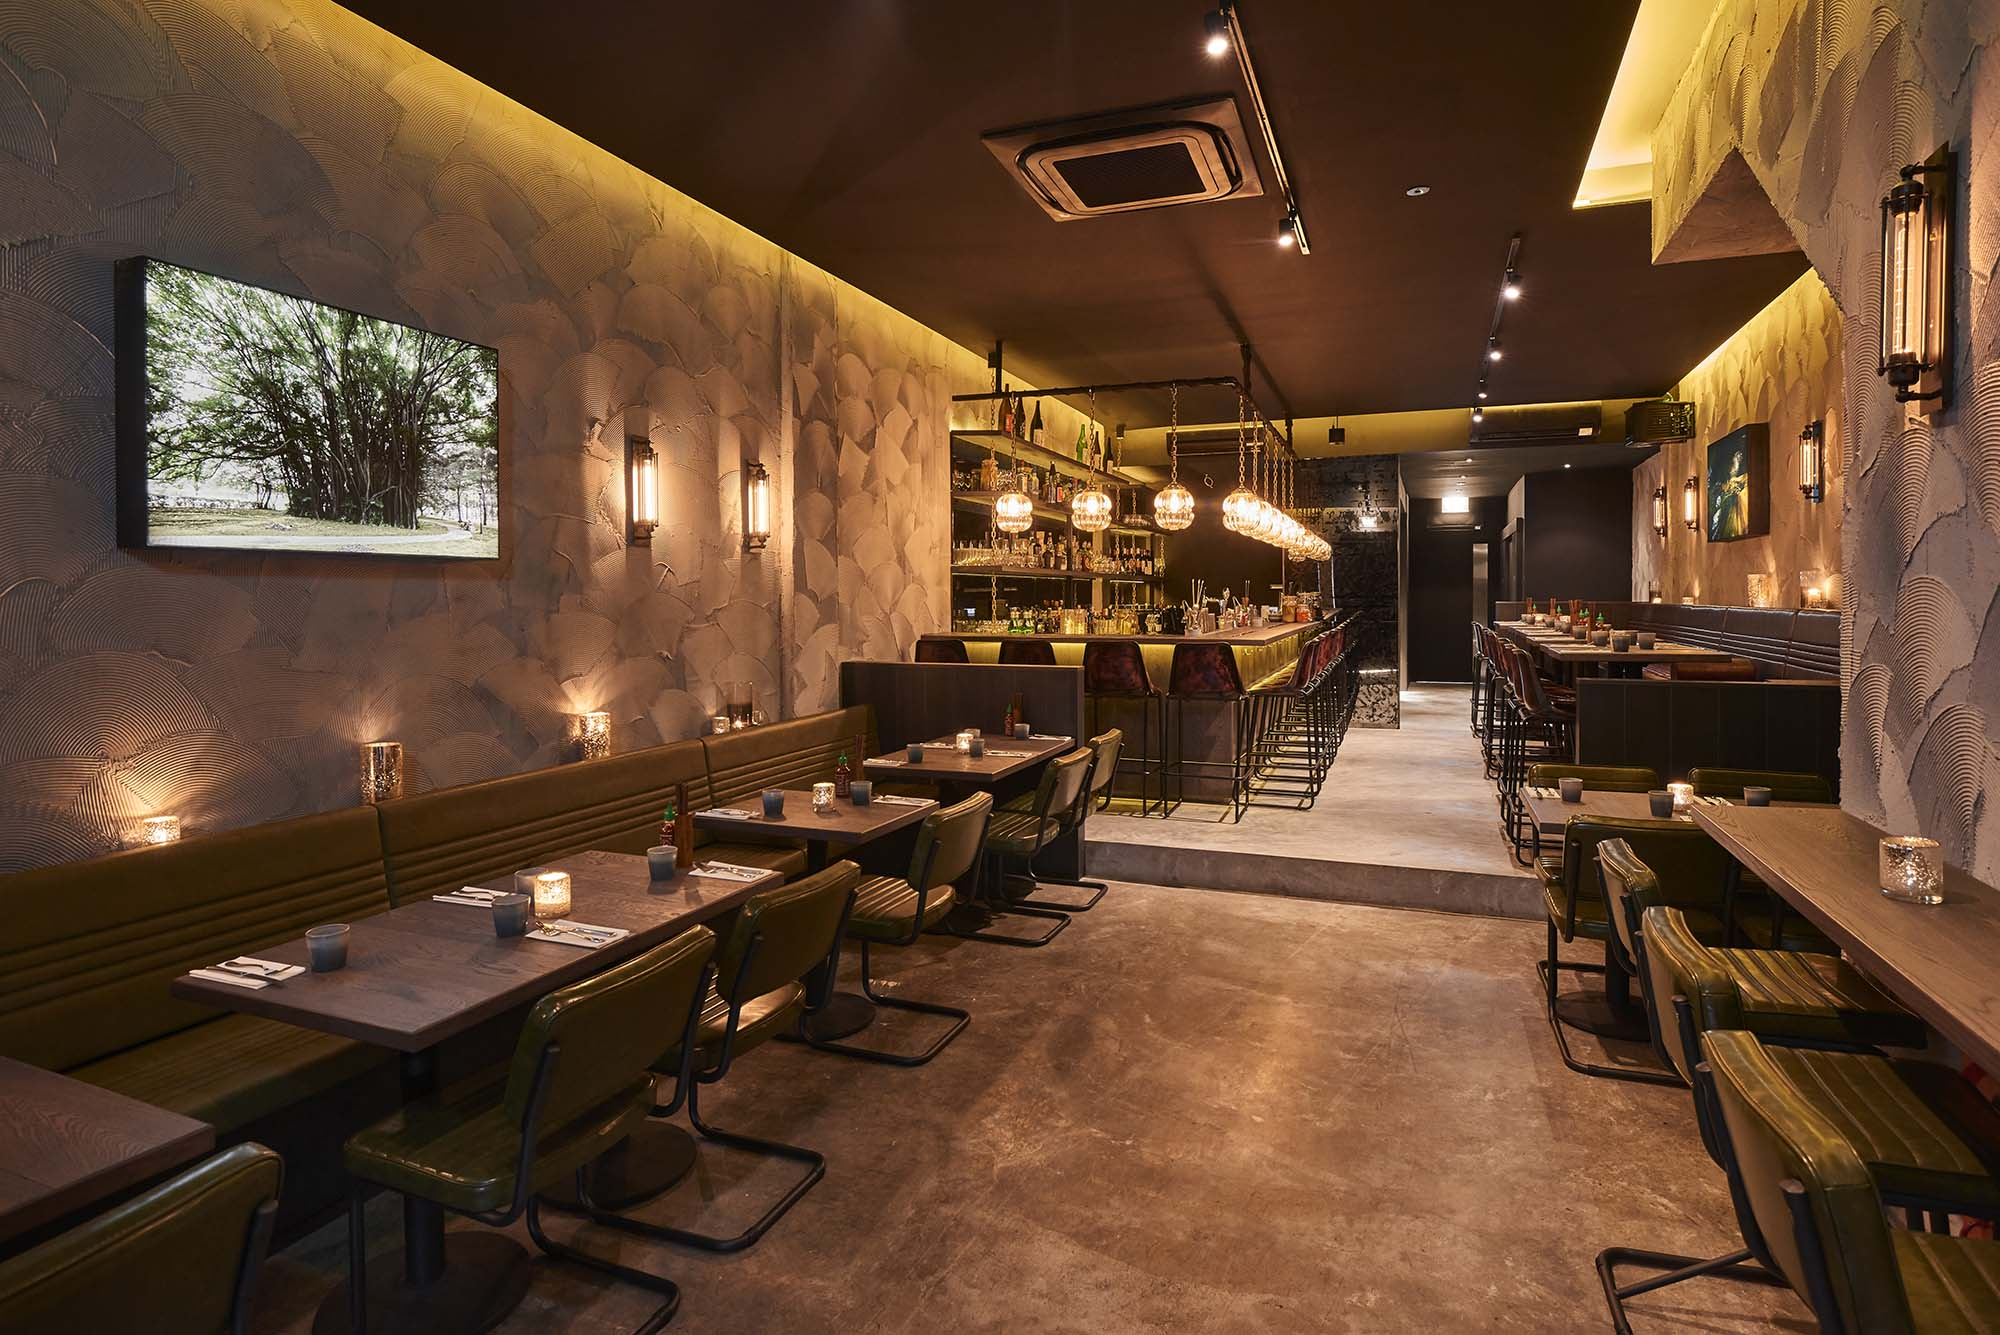 Review: Butcher Boy's simple fare and strong drinks make for a boisterous affair